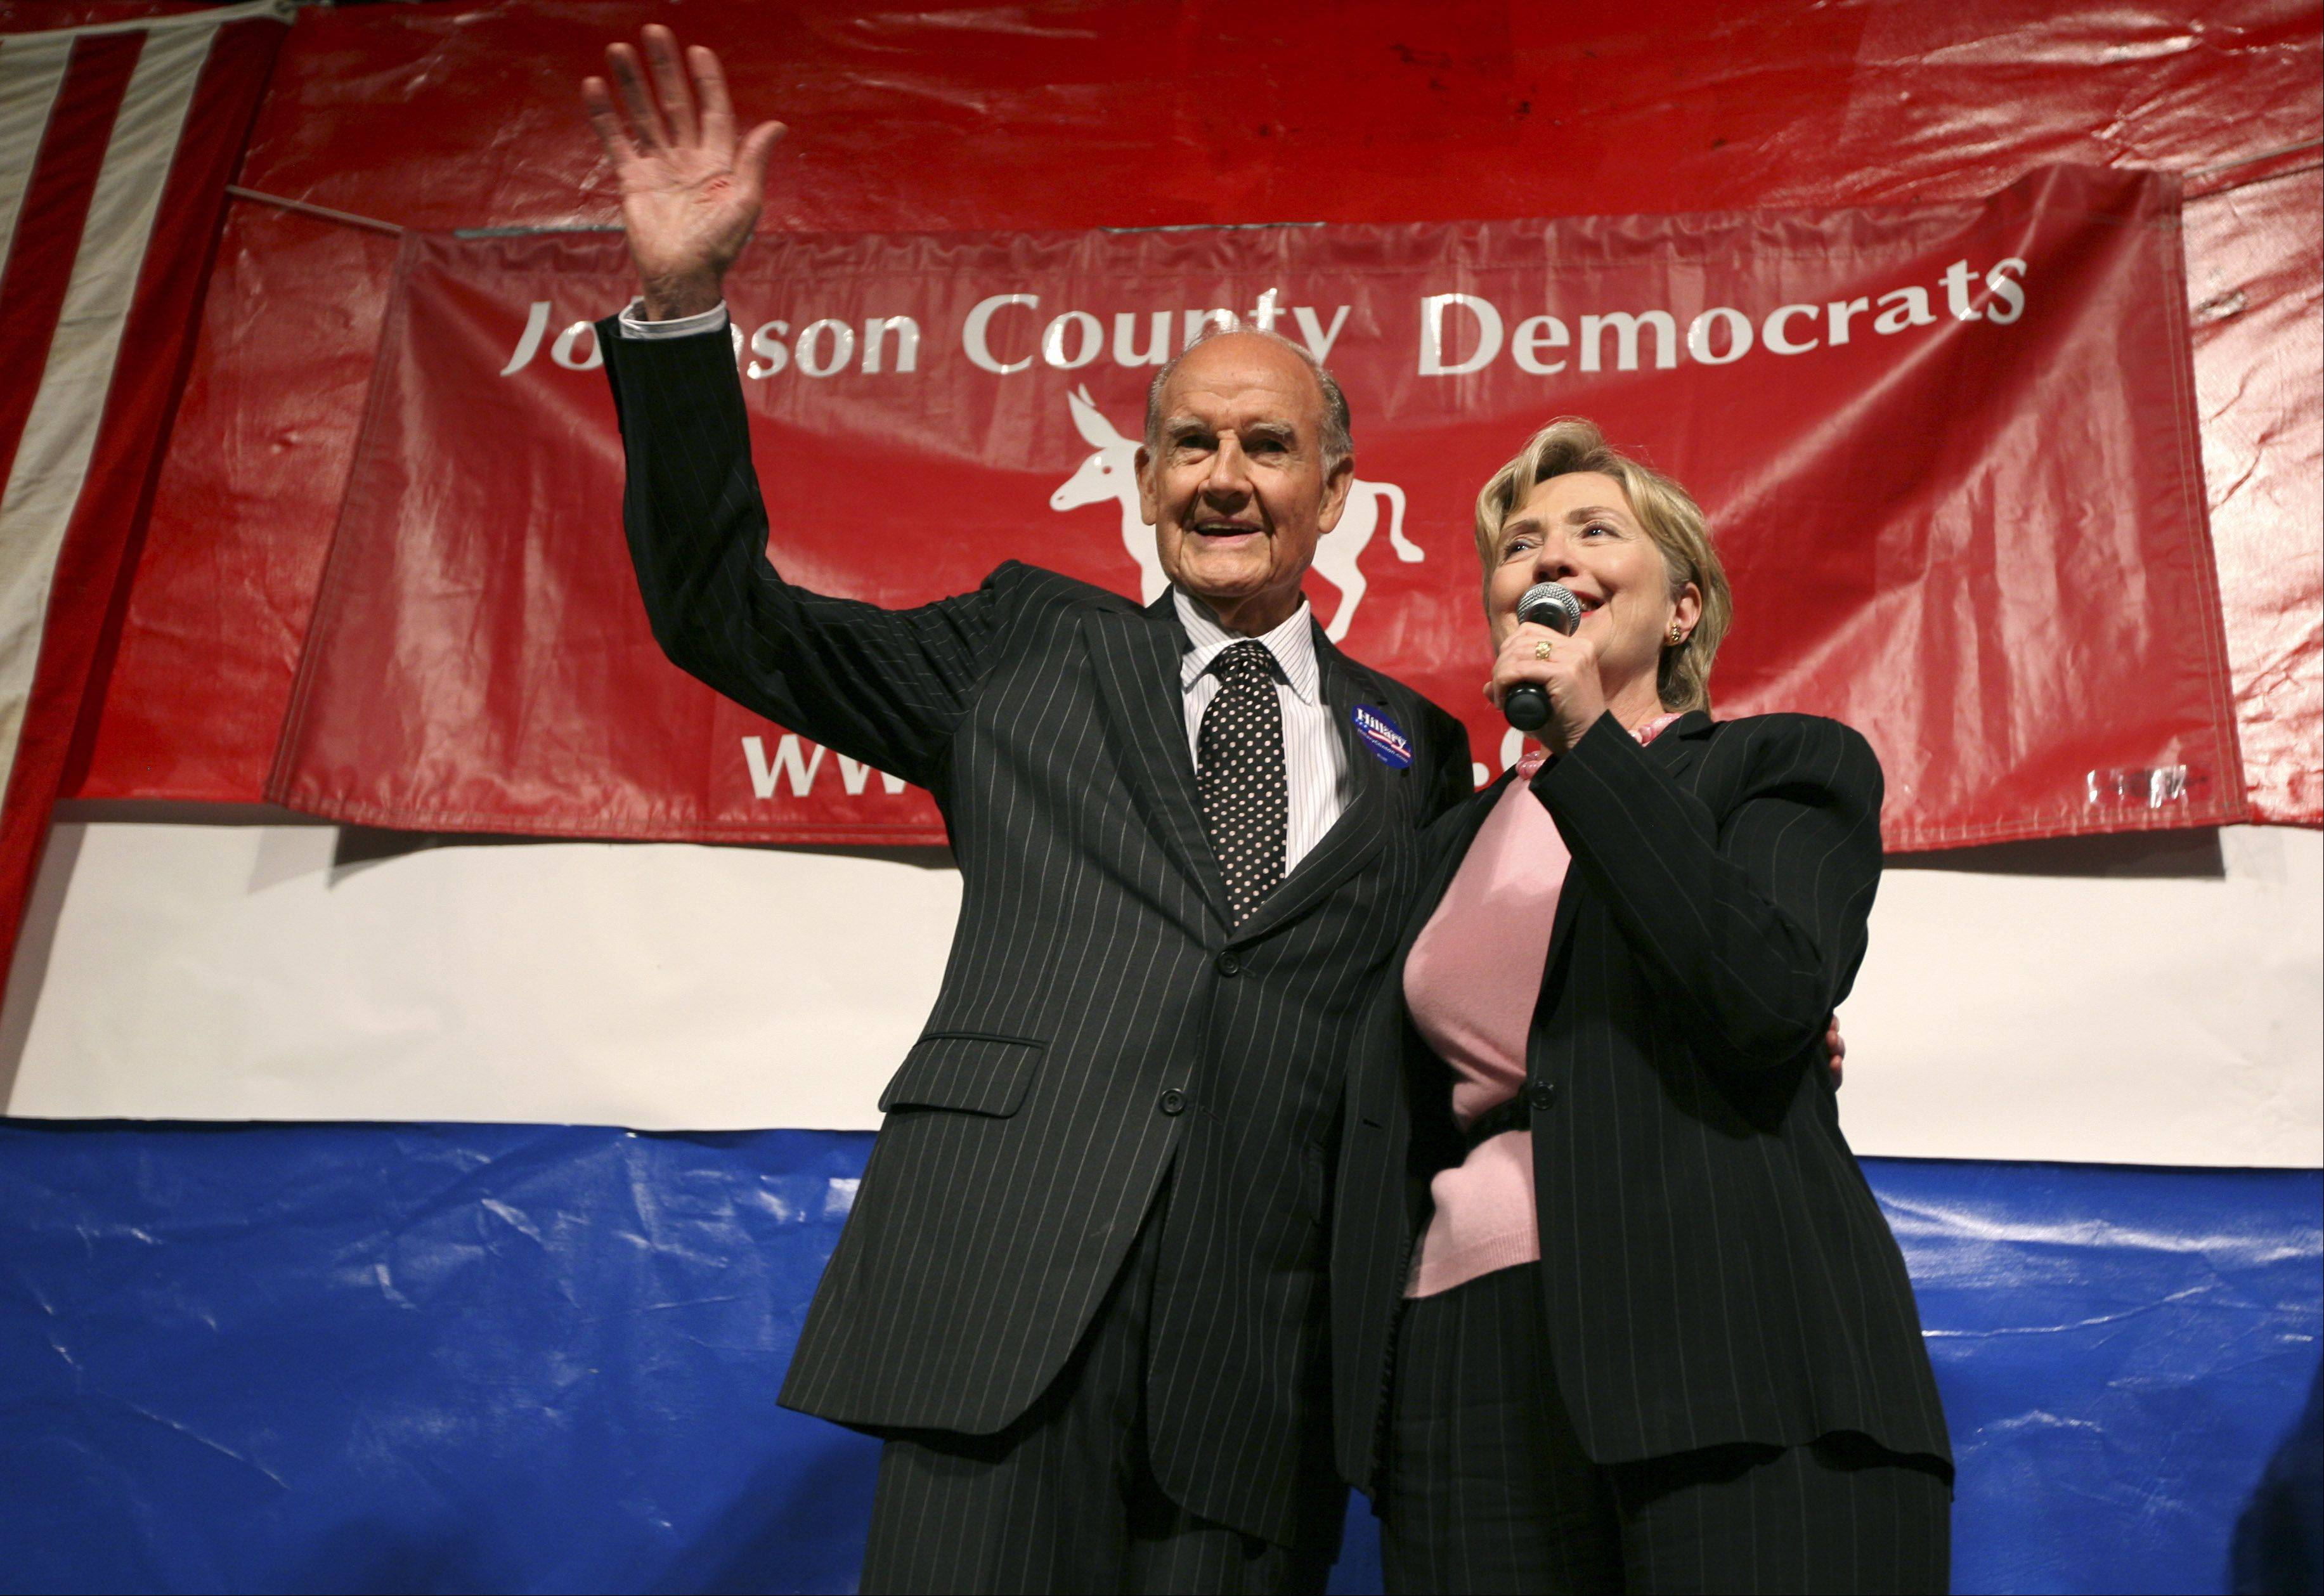 Democratic presidential hopeful, Sen. Hillary Rodham Clinton, D-N.Y., stands with former Democratic presidential candidate George McGovern before speaking at the Johnson County Democrats' annual barbecue, Saturday, Oct. 6, 2007, in Iowa City, Iowa.